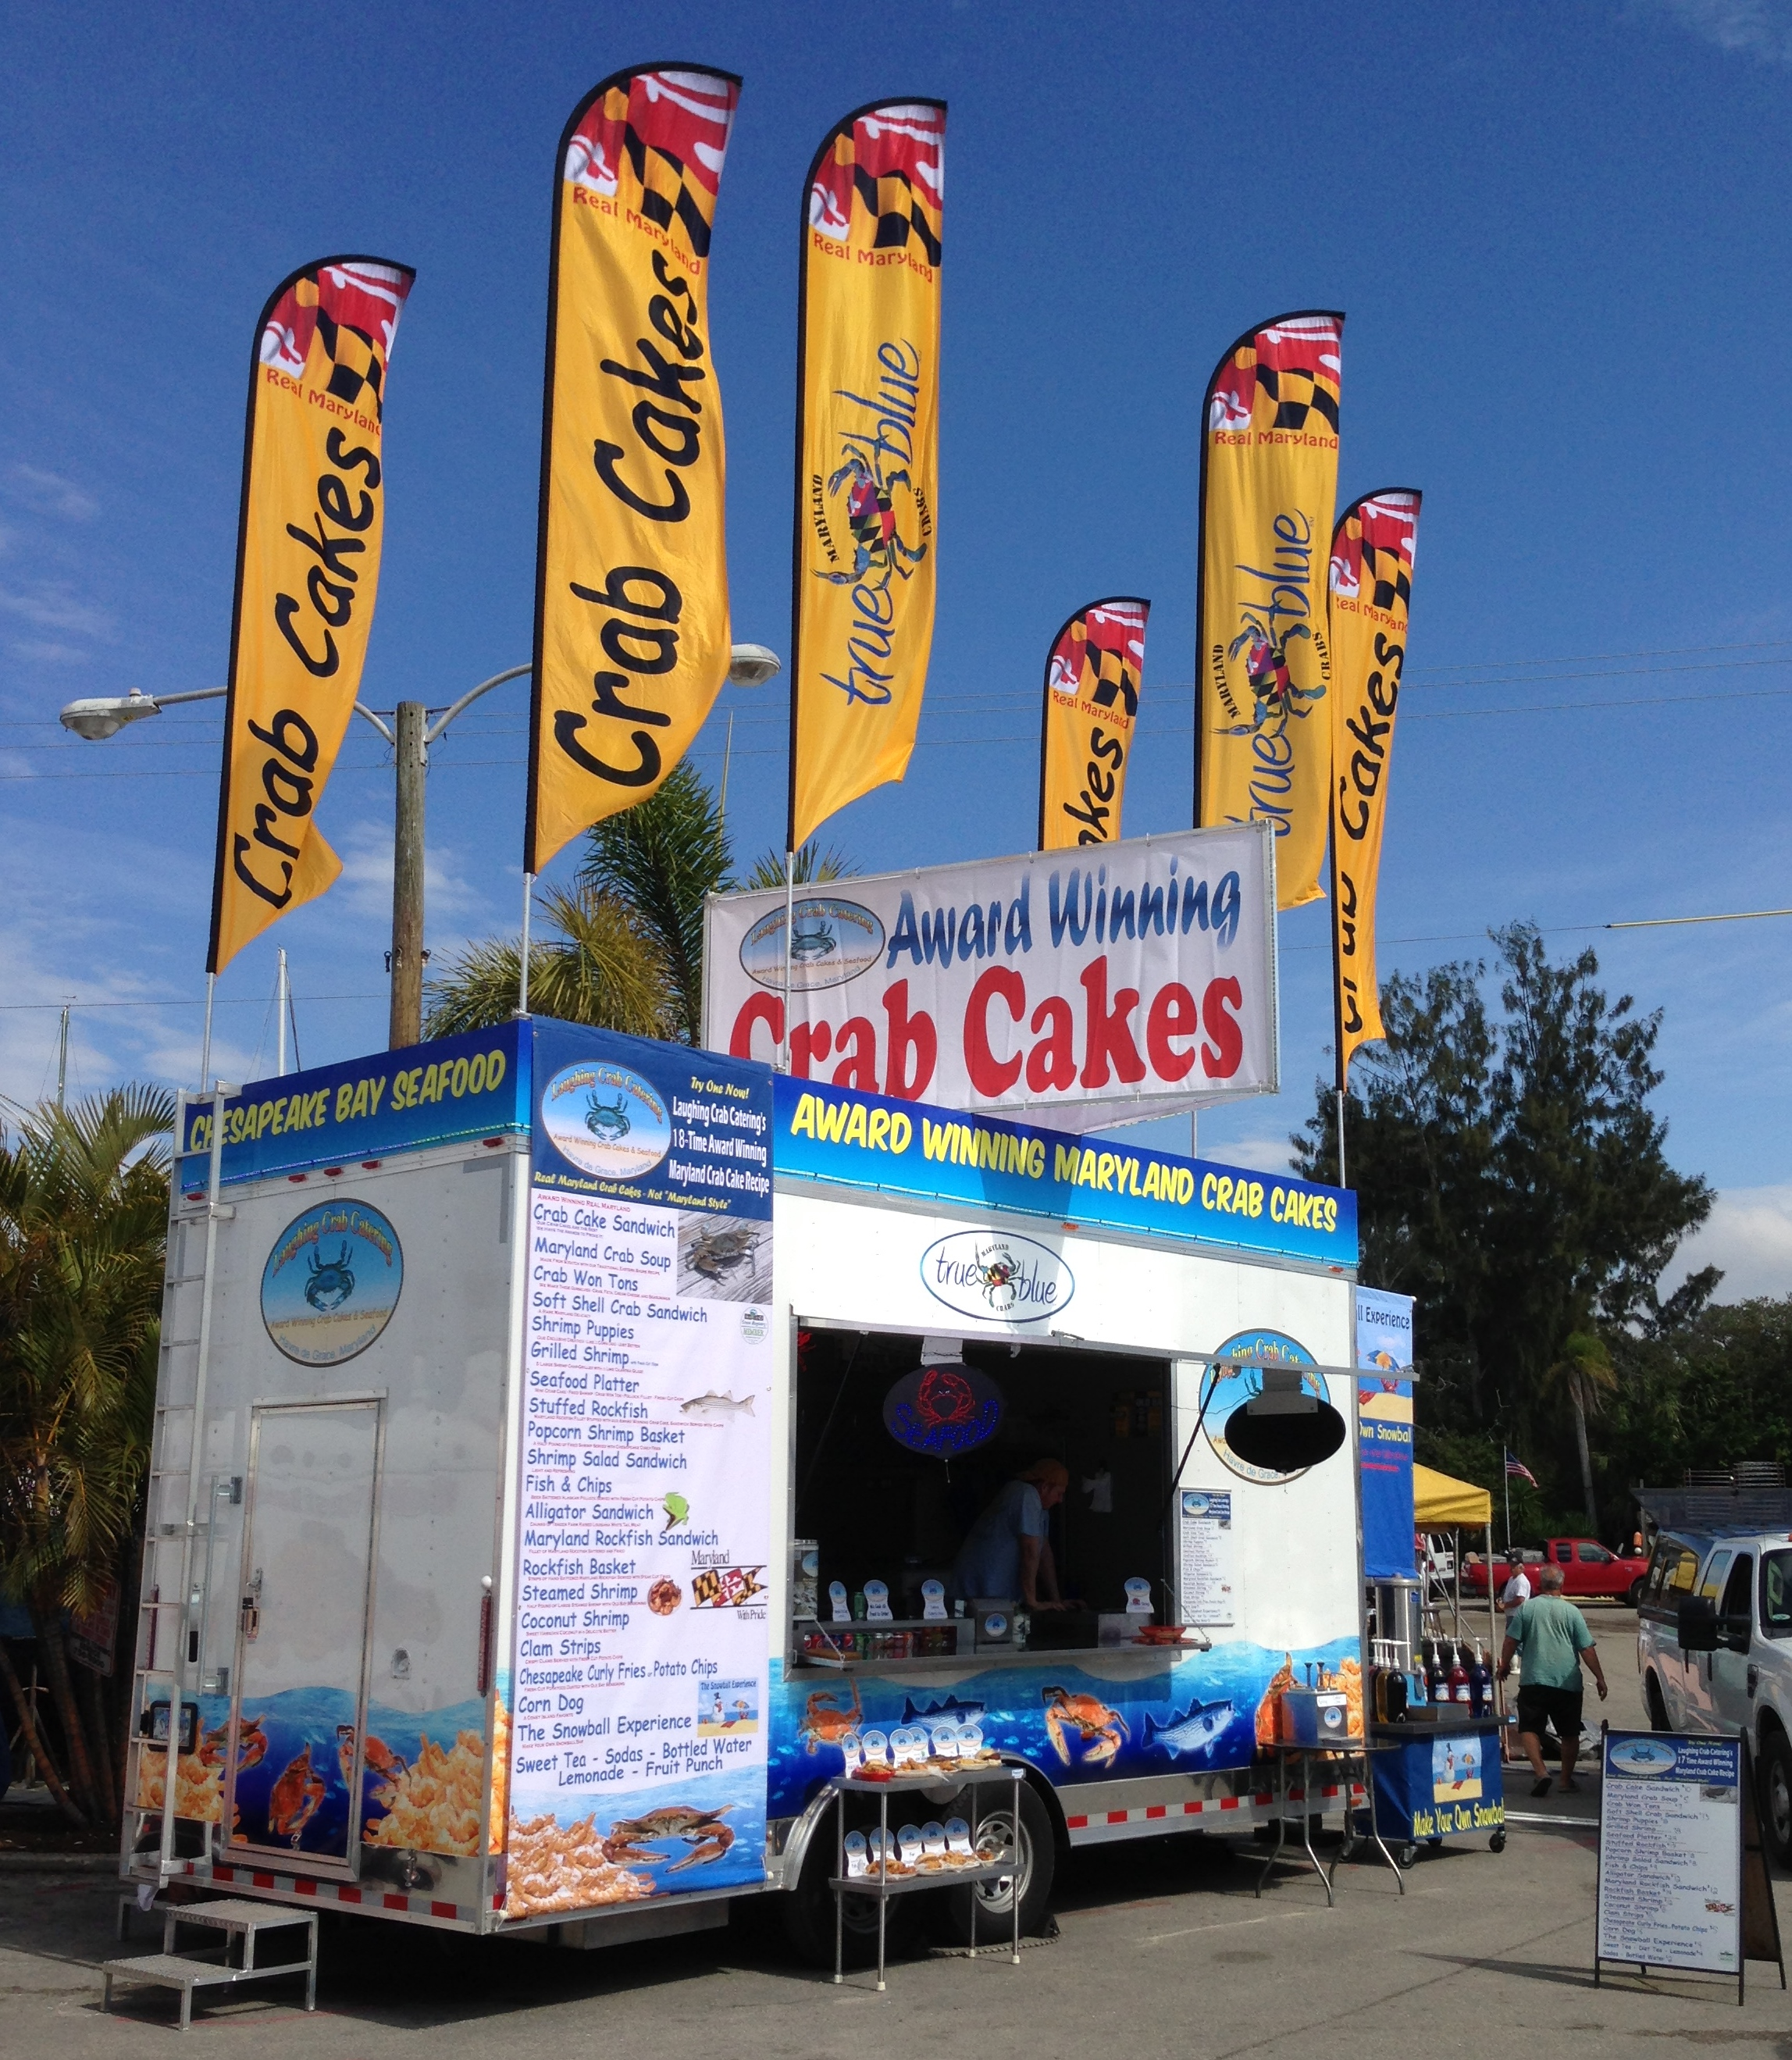 St. Augustine, FL: Havre de Grace Catering Company Honored at Seafood Festival